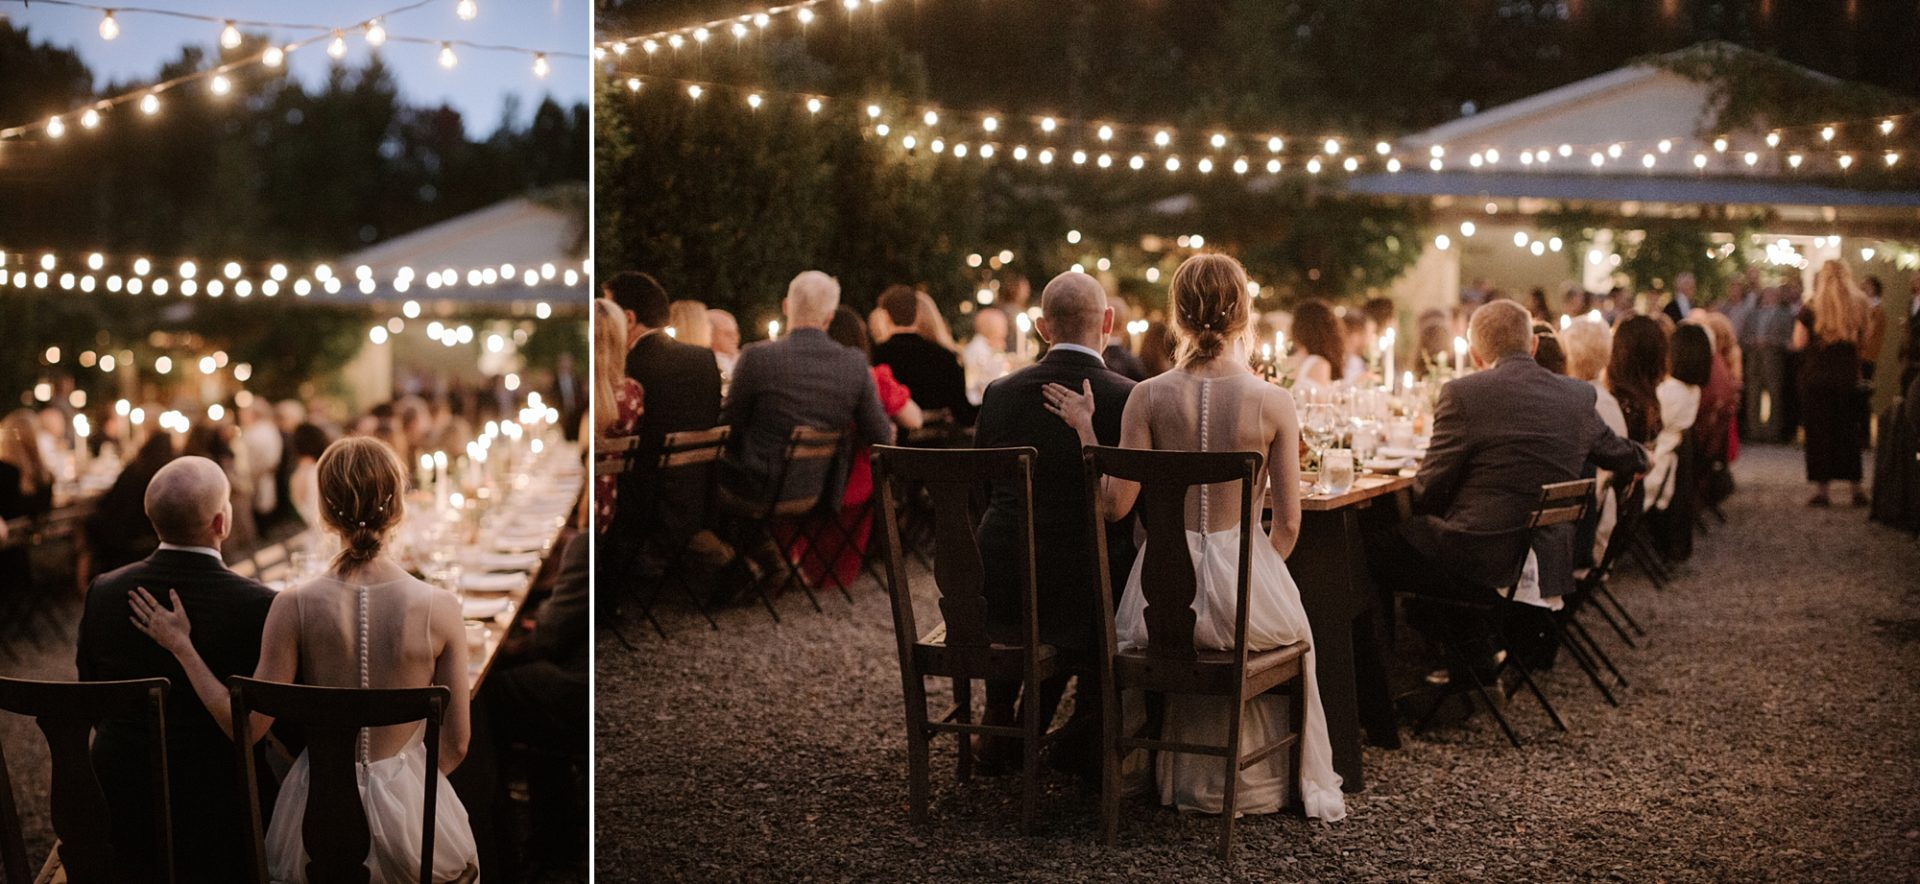 Bride and groom during dinner at M & D Farm